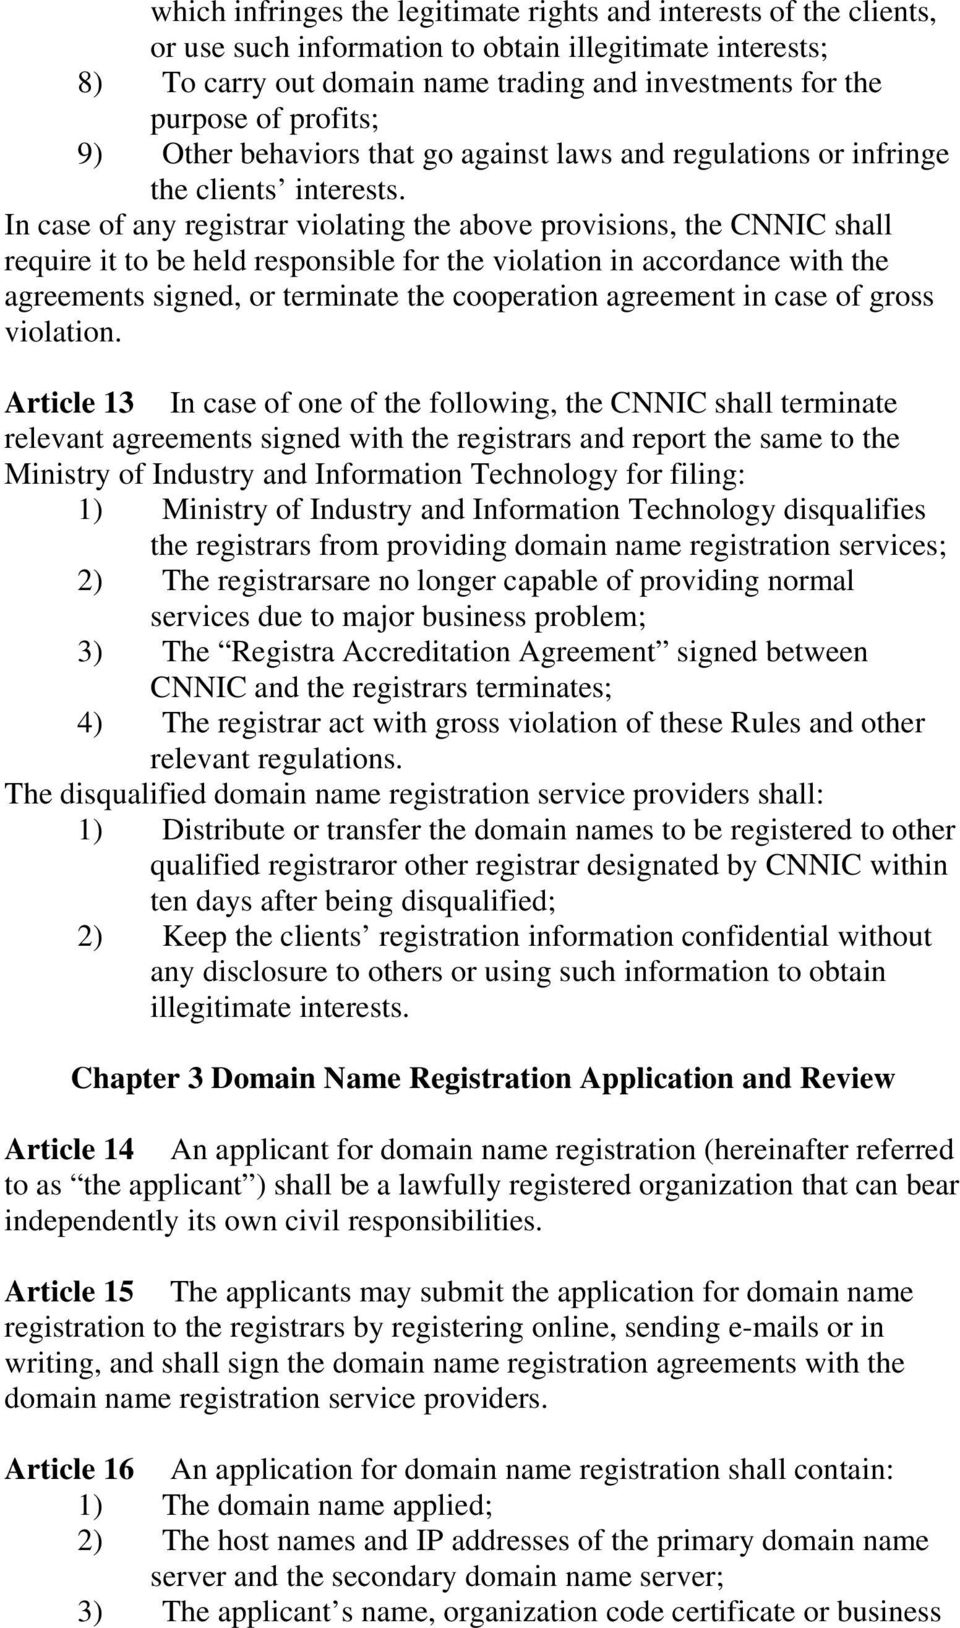 In case of any registrar violating the above provisions, the CNNIC shall require it to be held responsible for the violation in accordance with the agreements signed, or terminate the cooperation